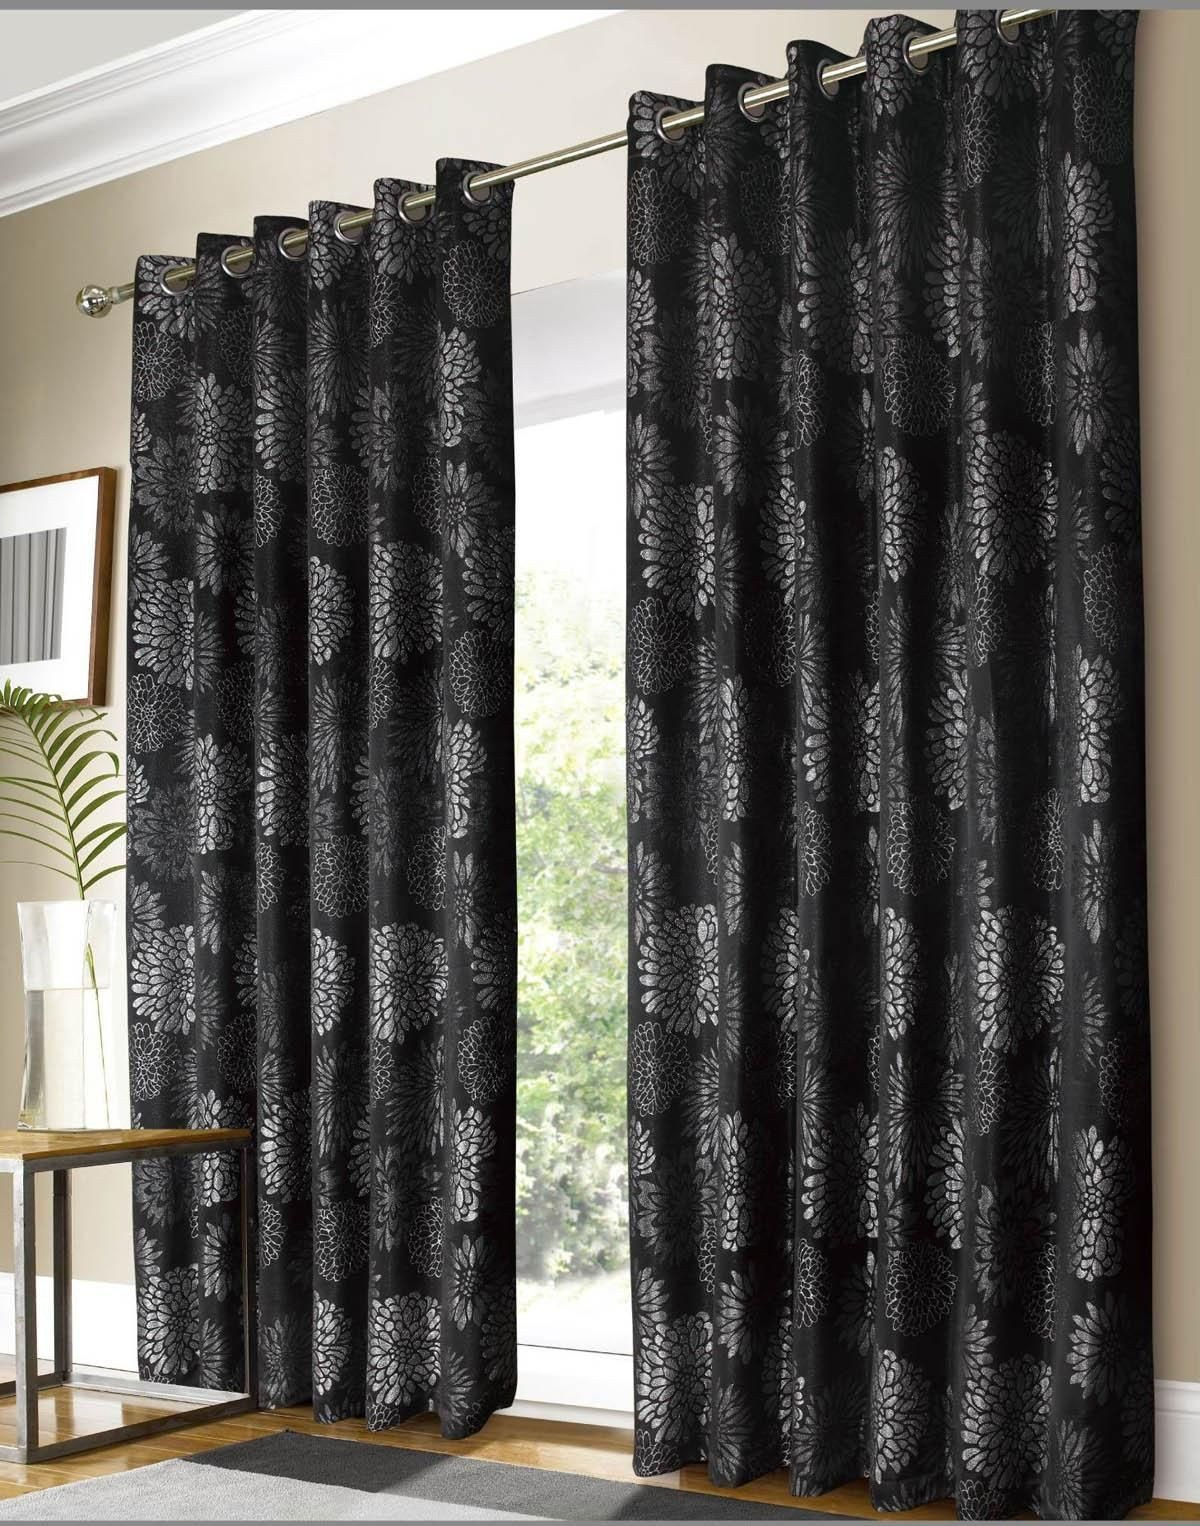 Bedroom Curtains at Walmart Lovely Black and Silver Curtains